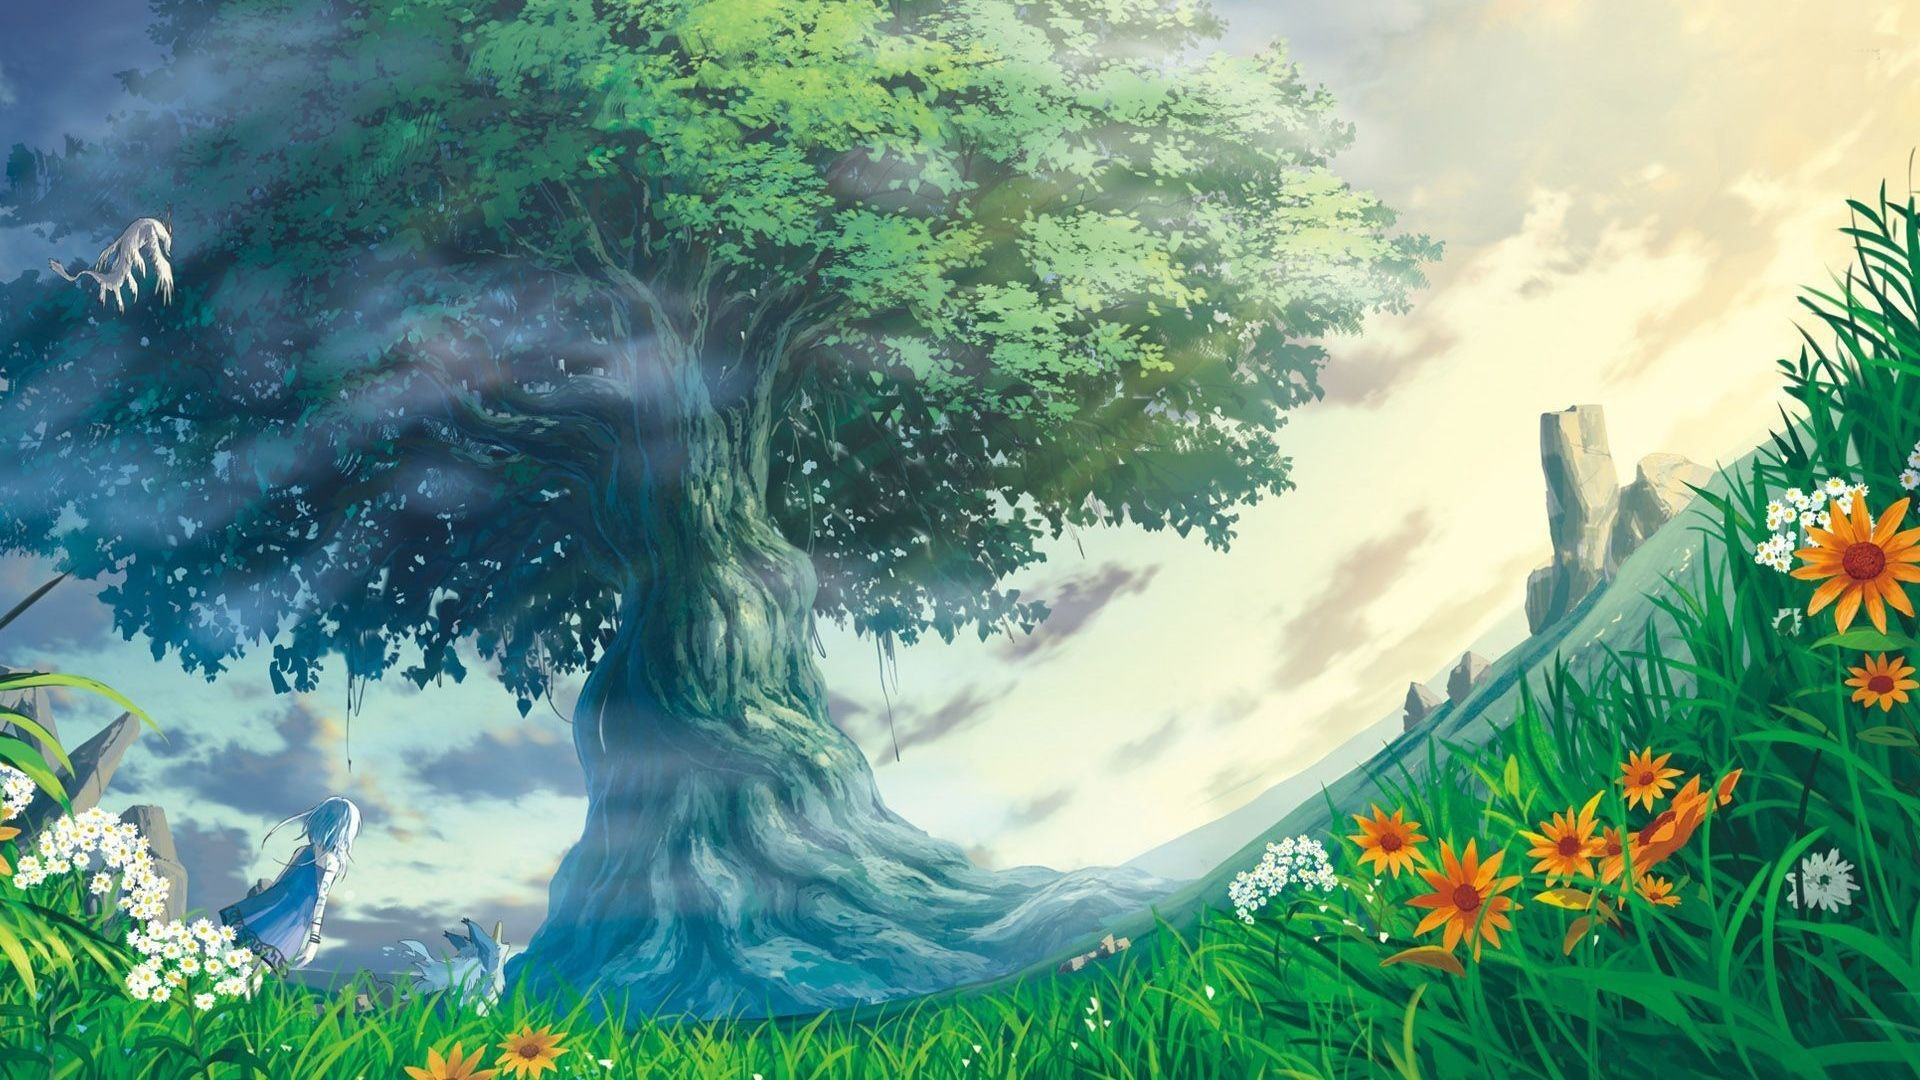 Anime Forest HD Wallpaper Download